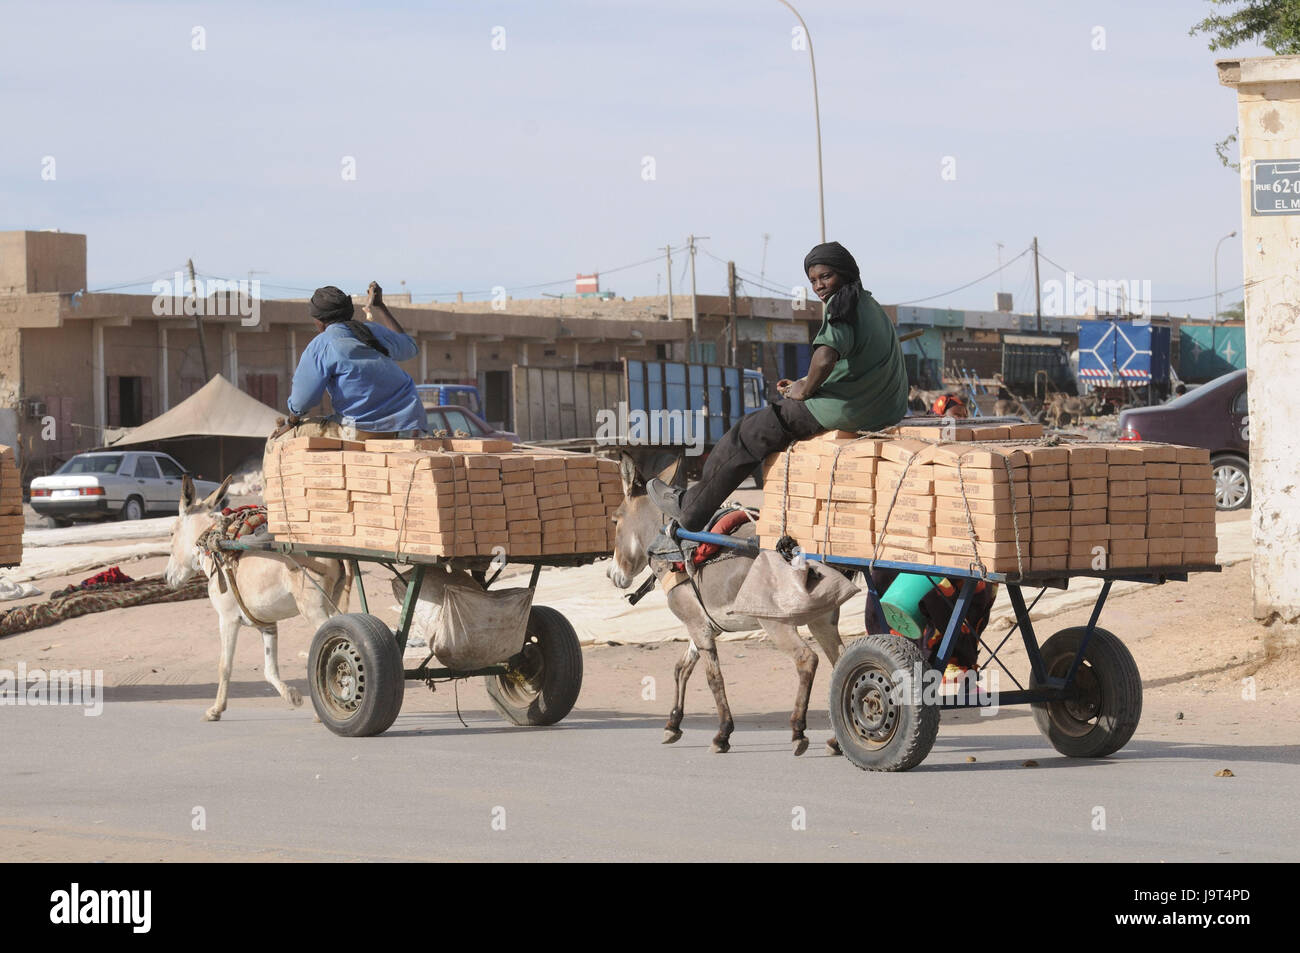 Mauritania,Nouakchott,men,donkey carts,costs transport,no model release,Africa,West Africa,town,capital,economy,building,houses,architecture,person,locals,turban,transport,carts,donkeys,animals,benefit Stock Photo